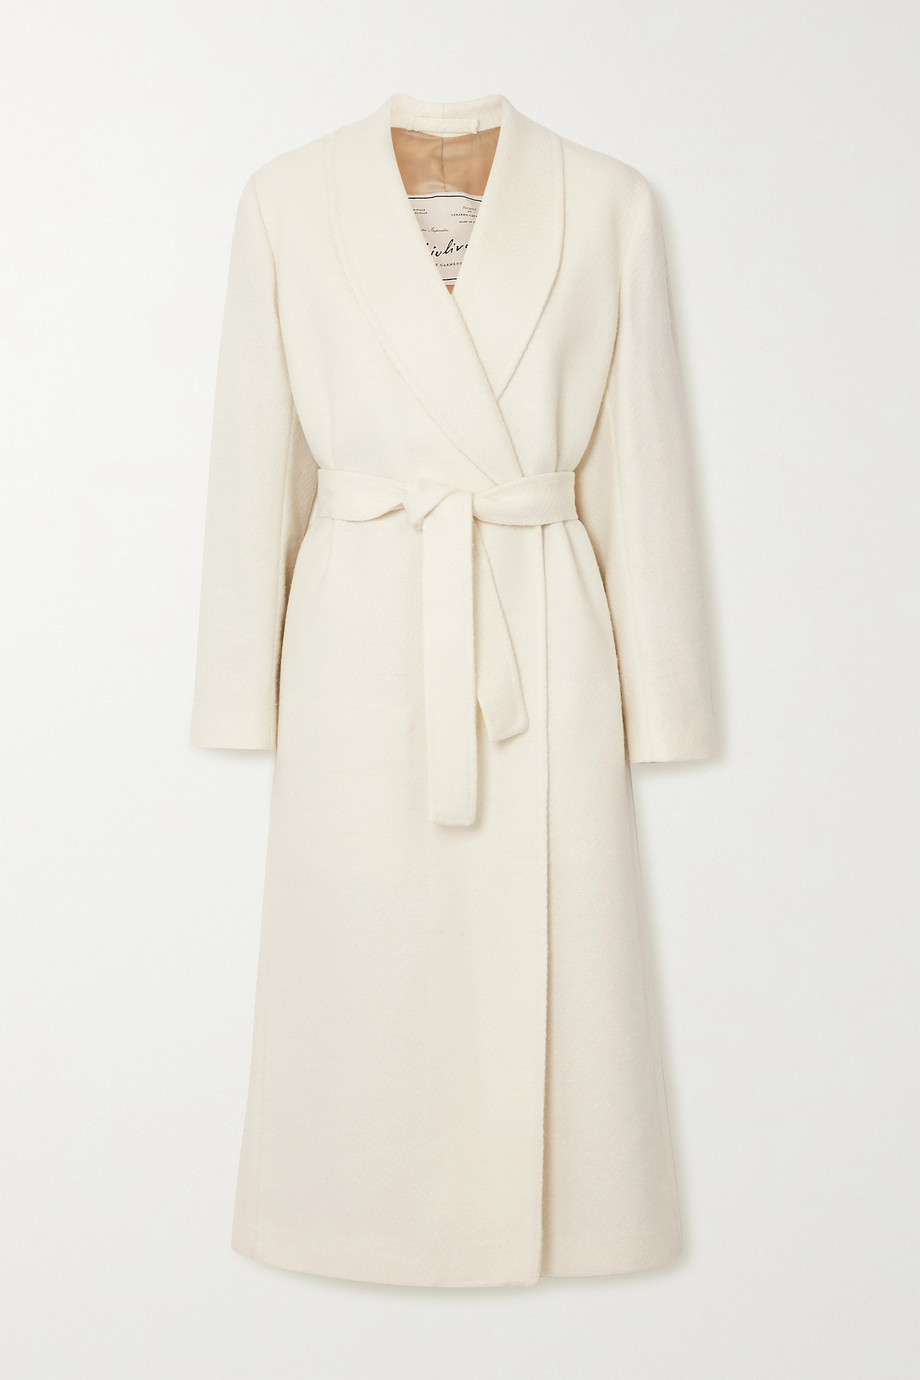 Giuliva Heritage The Linda belted herringbone wool-blend coat